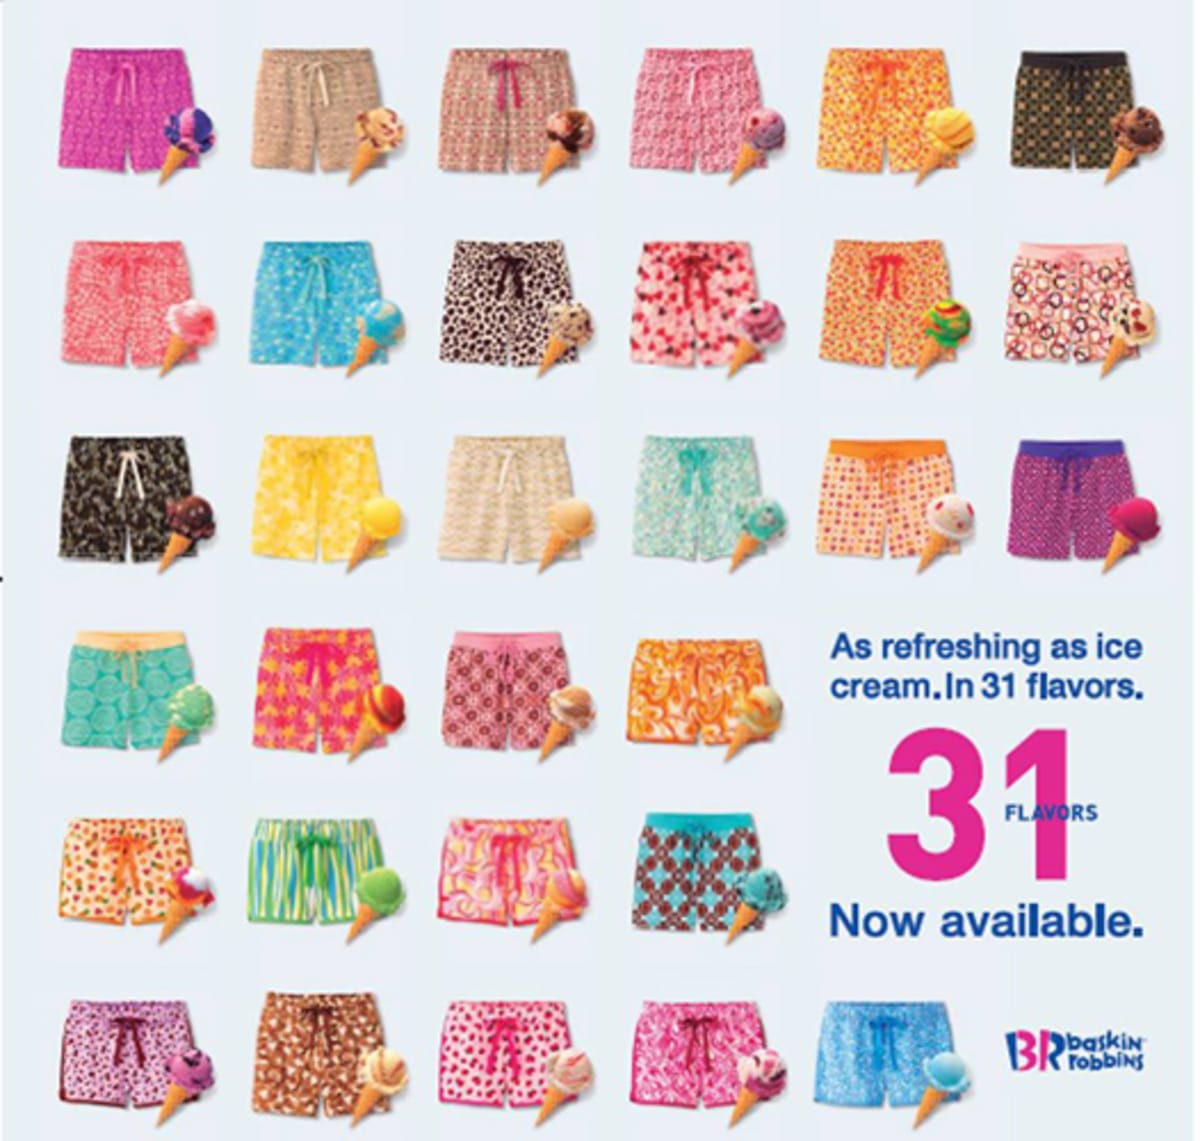 31 Flavors Of Uniqlo Shorts First We Feast